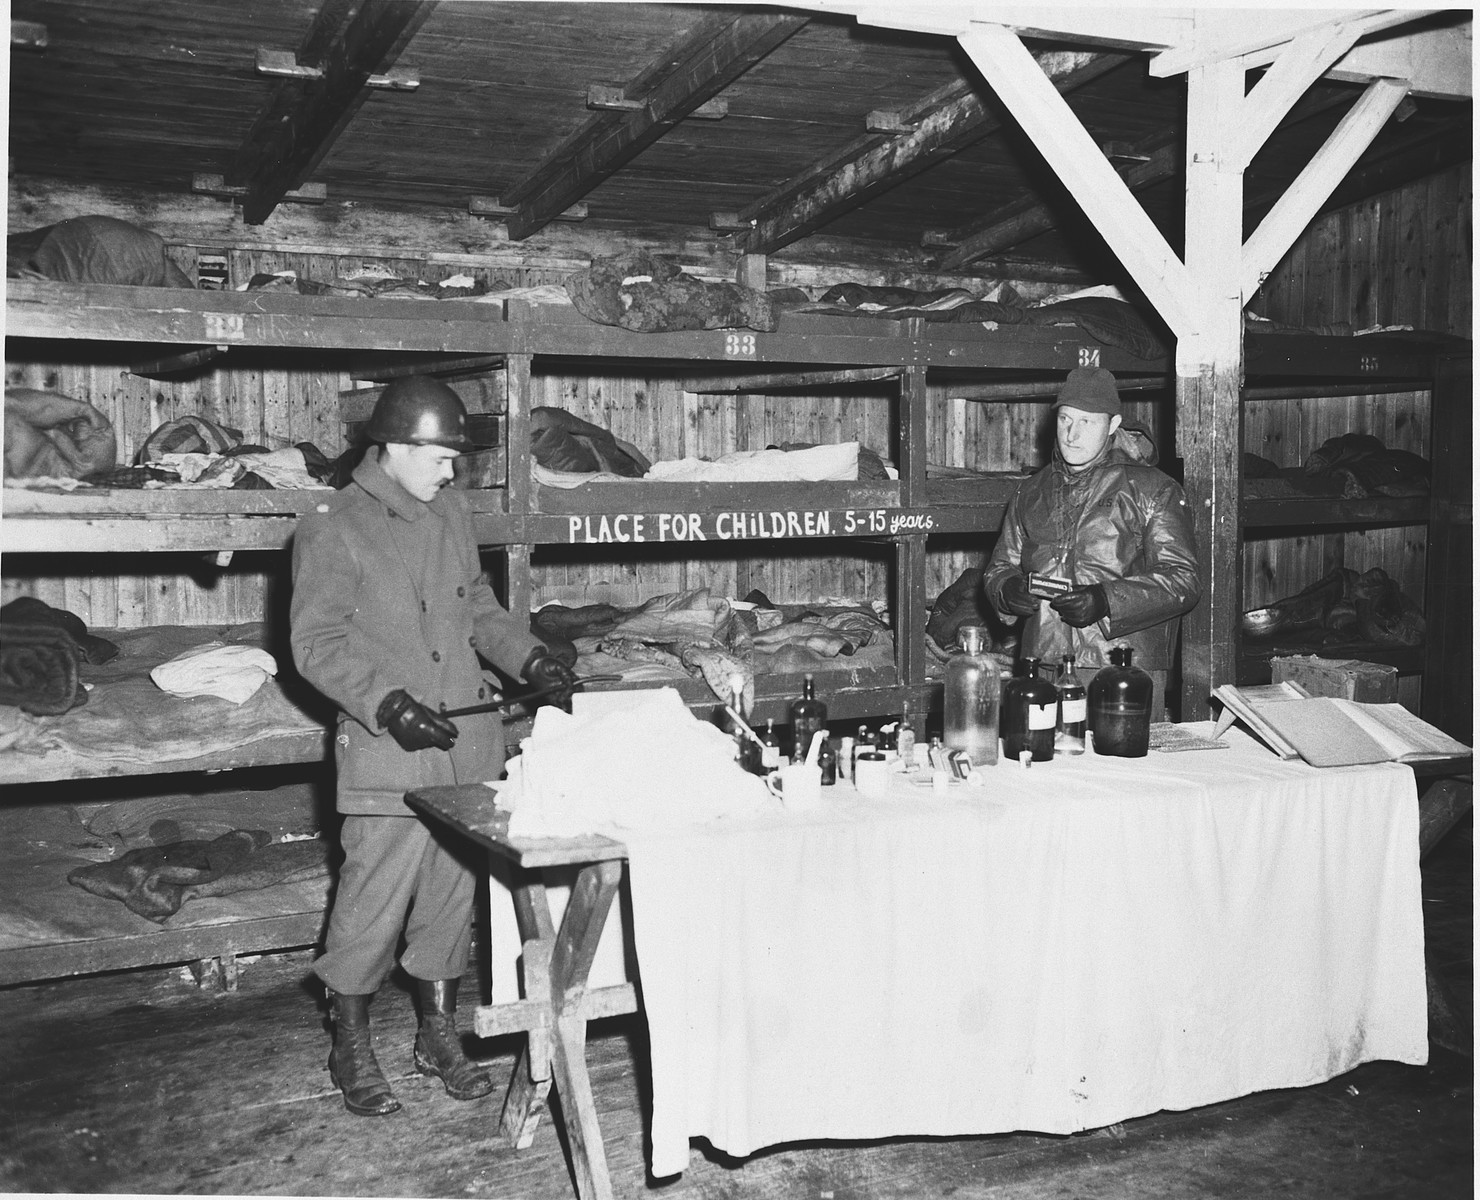 "An American soldier looks at items on a display table inside a barracks in the Buchenwald concentration camp.  ""Place for children 5-15 years"" is written on the side of one of the bunks."